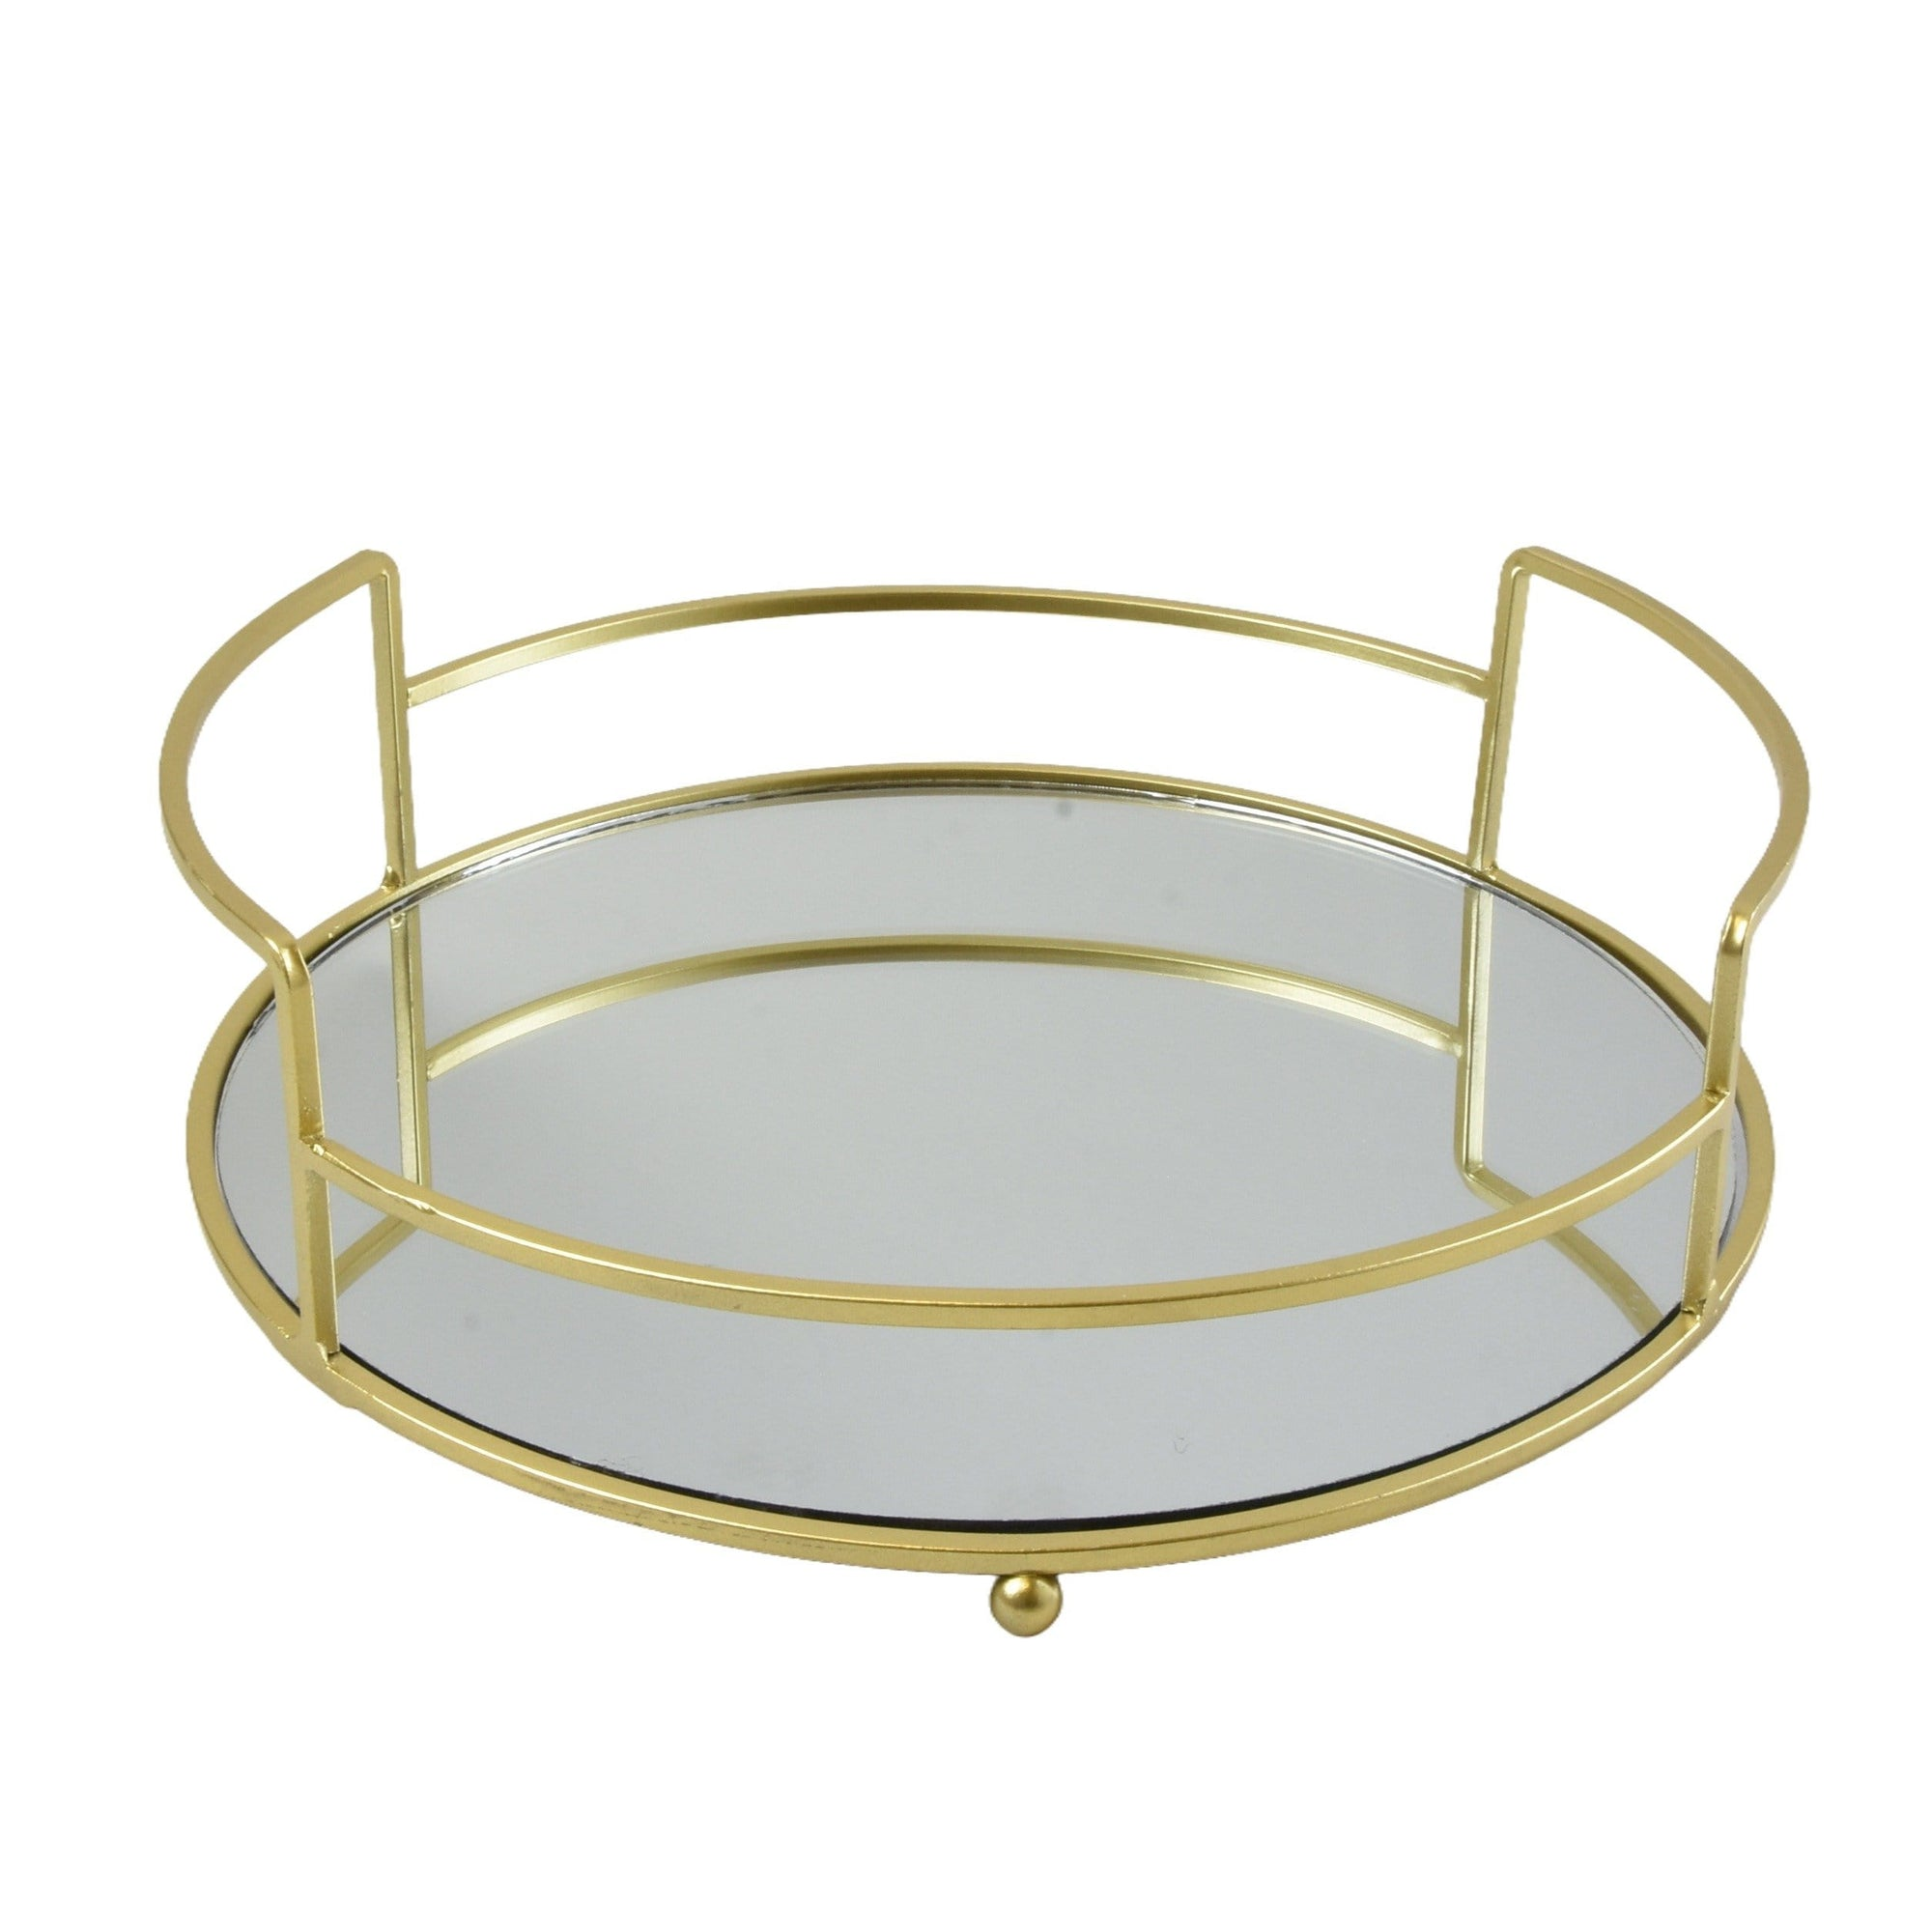 Candlelight Home Round Gold Mirrored Tray